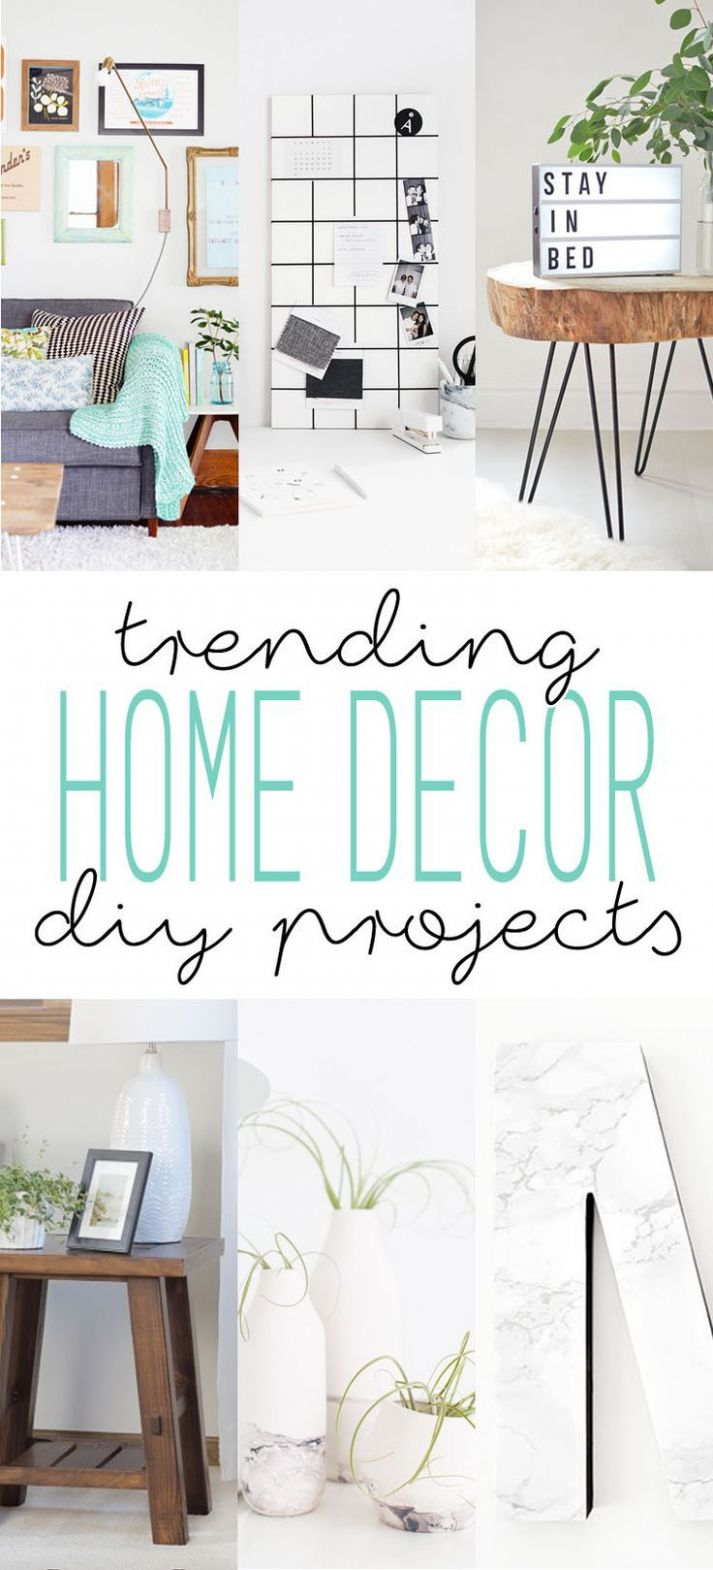 Trending Home Decor DIY Projects (With images) | Diy decor, Home ...